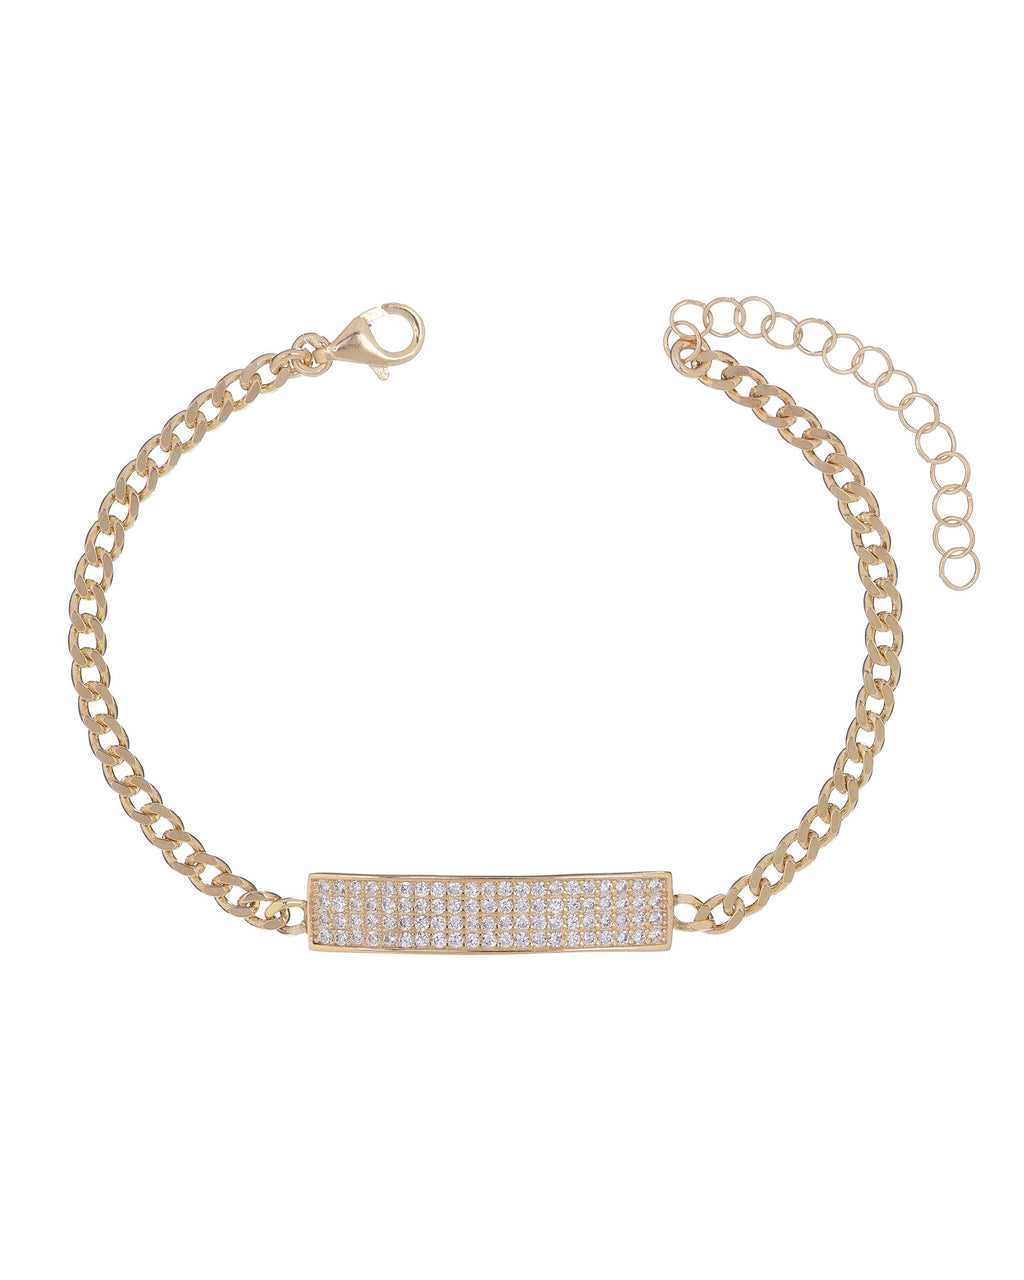 "Pave White Topaz Chain Bracelet 7.8"" +2"" Embellished with Austrian Crystals in 18K Rose Gold Plated"